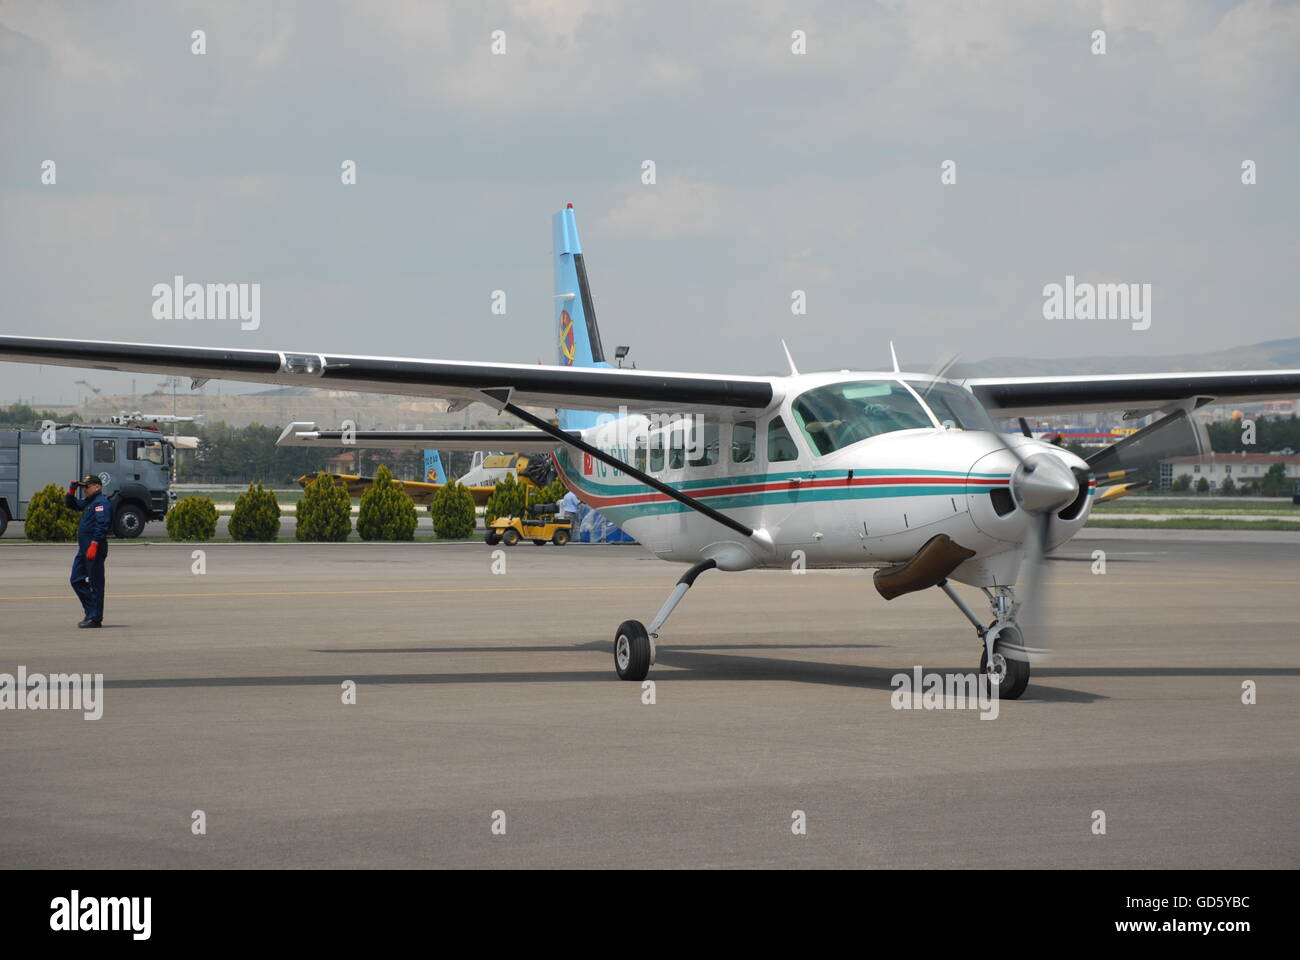 Cessna 206 Caravan aircraft at the Turkish Air Association-THK's Etimesgut Airport during the Air fest - Stock Image